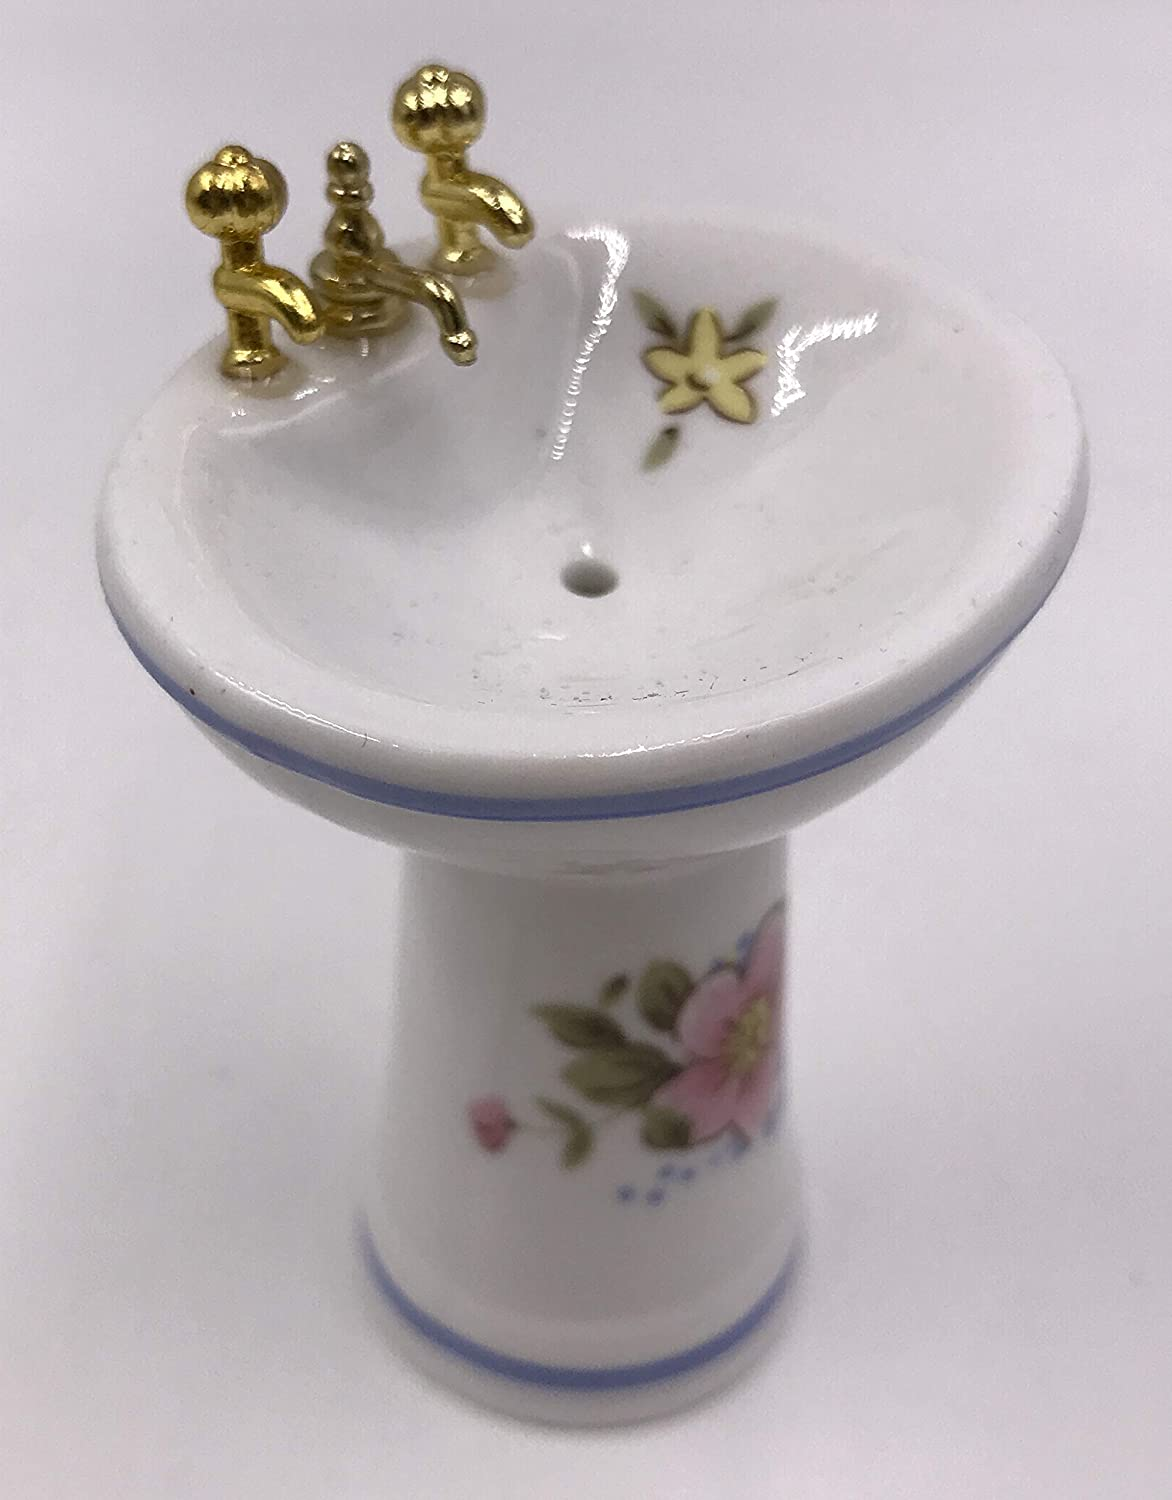 White Ceramic Dollhouse Bathroom Set//4 Floral Designs Brass Colored Faucets Toilet Footed Tub Sink Mirror 1:12 Scale